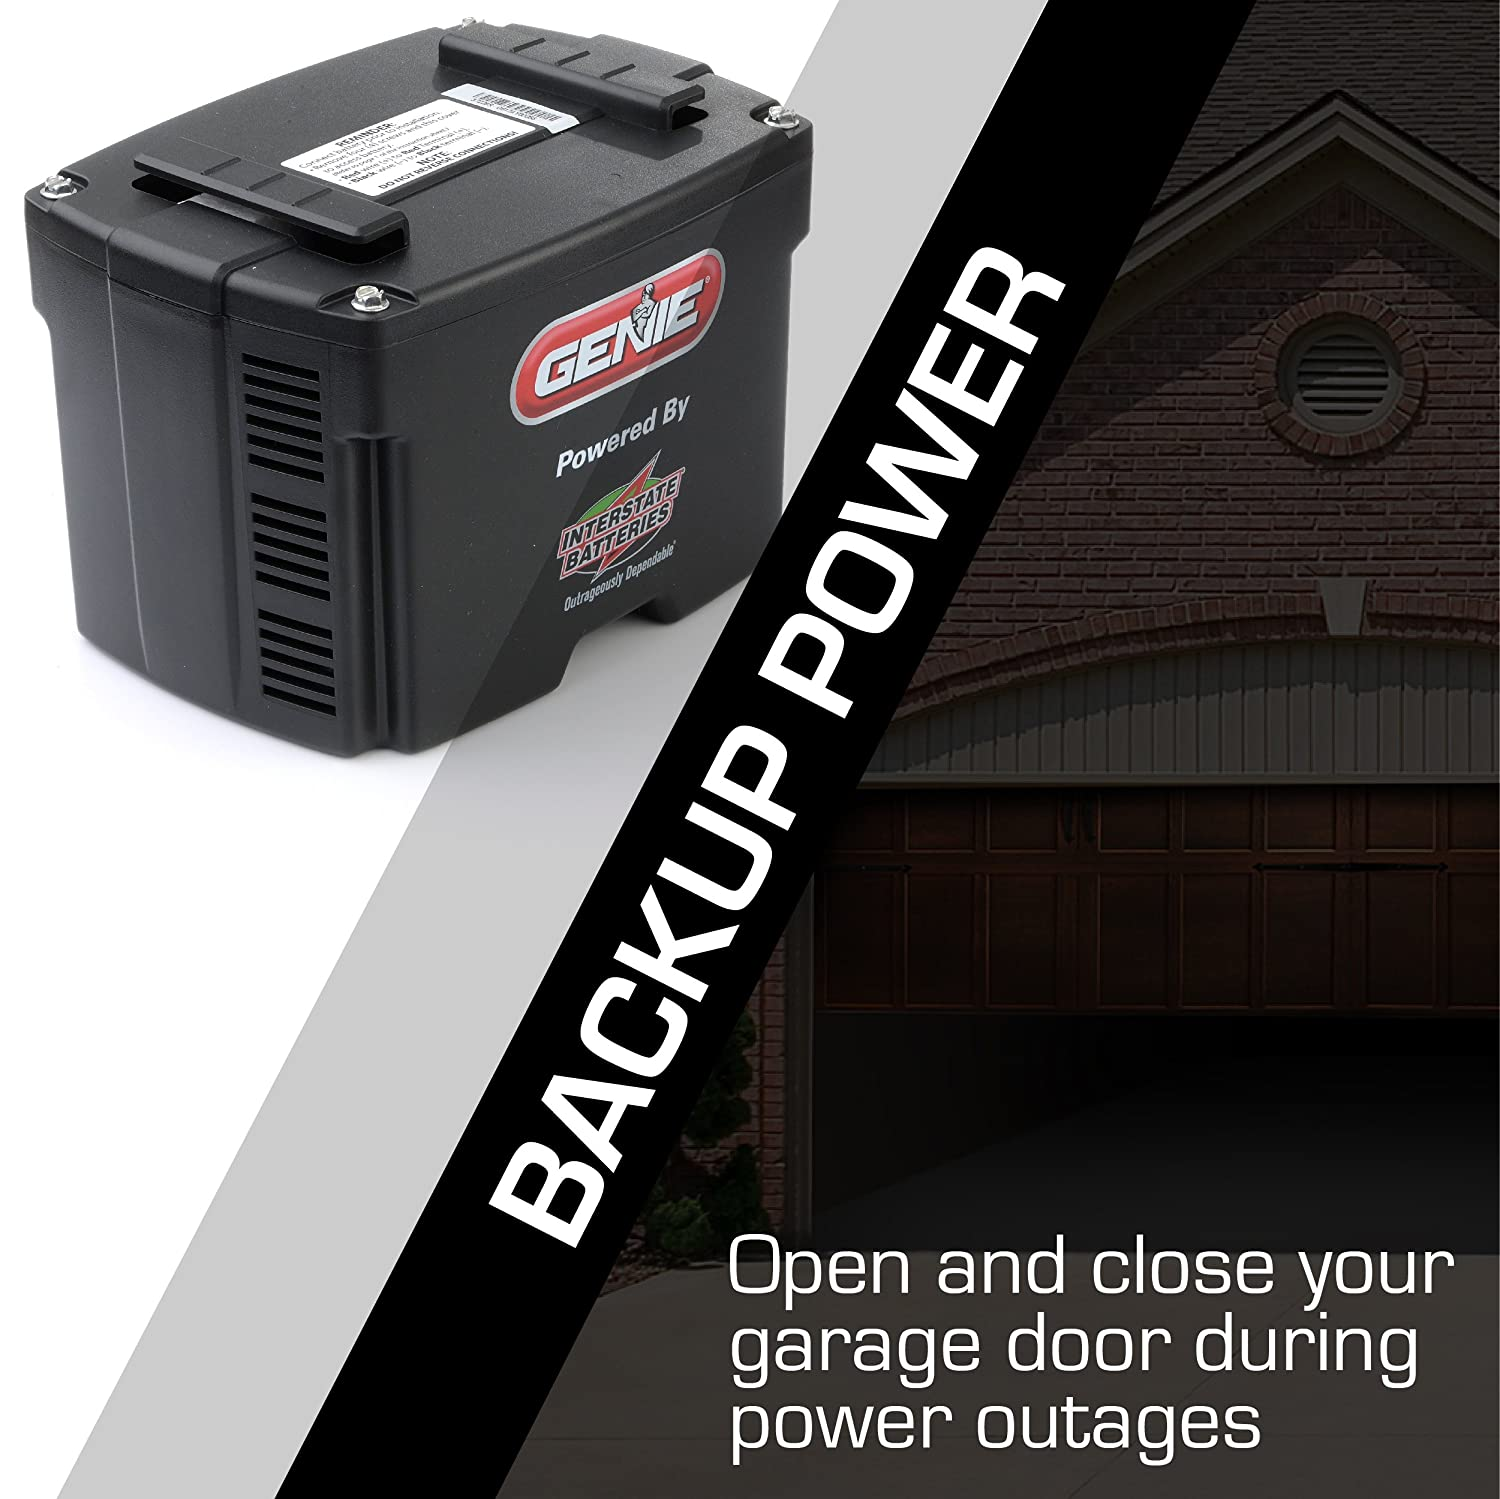 Genie Garage Door Opener Doesn T Work After Power Outage